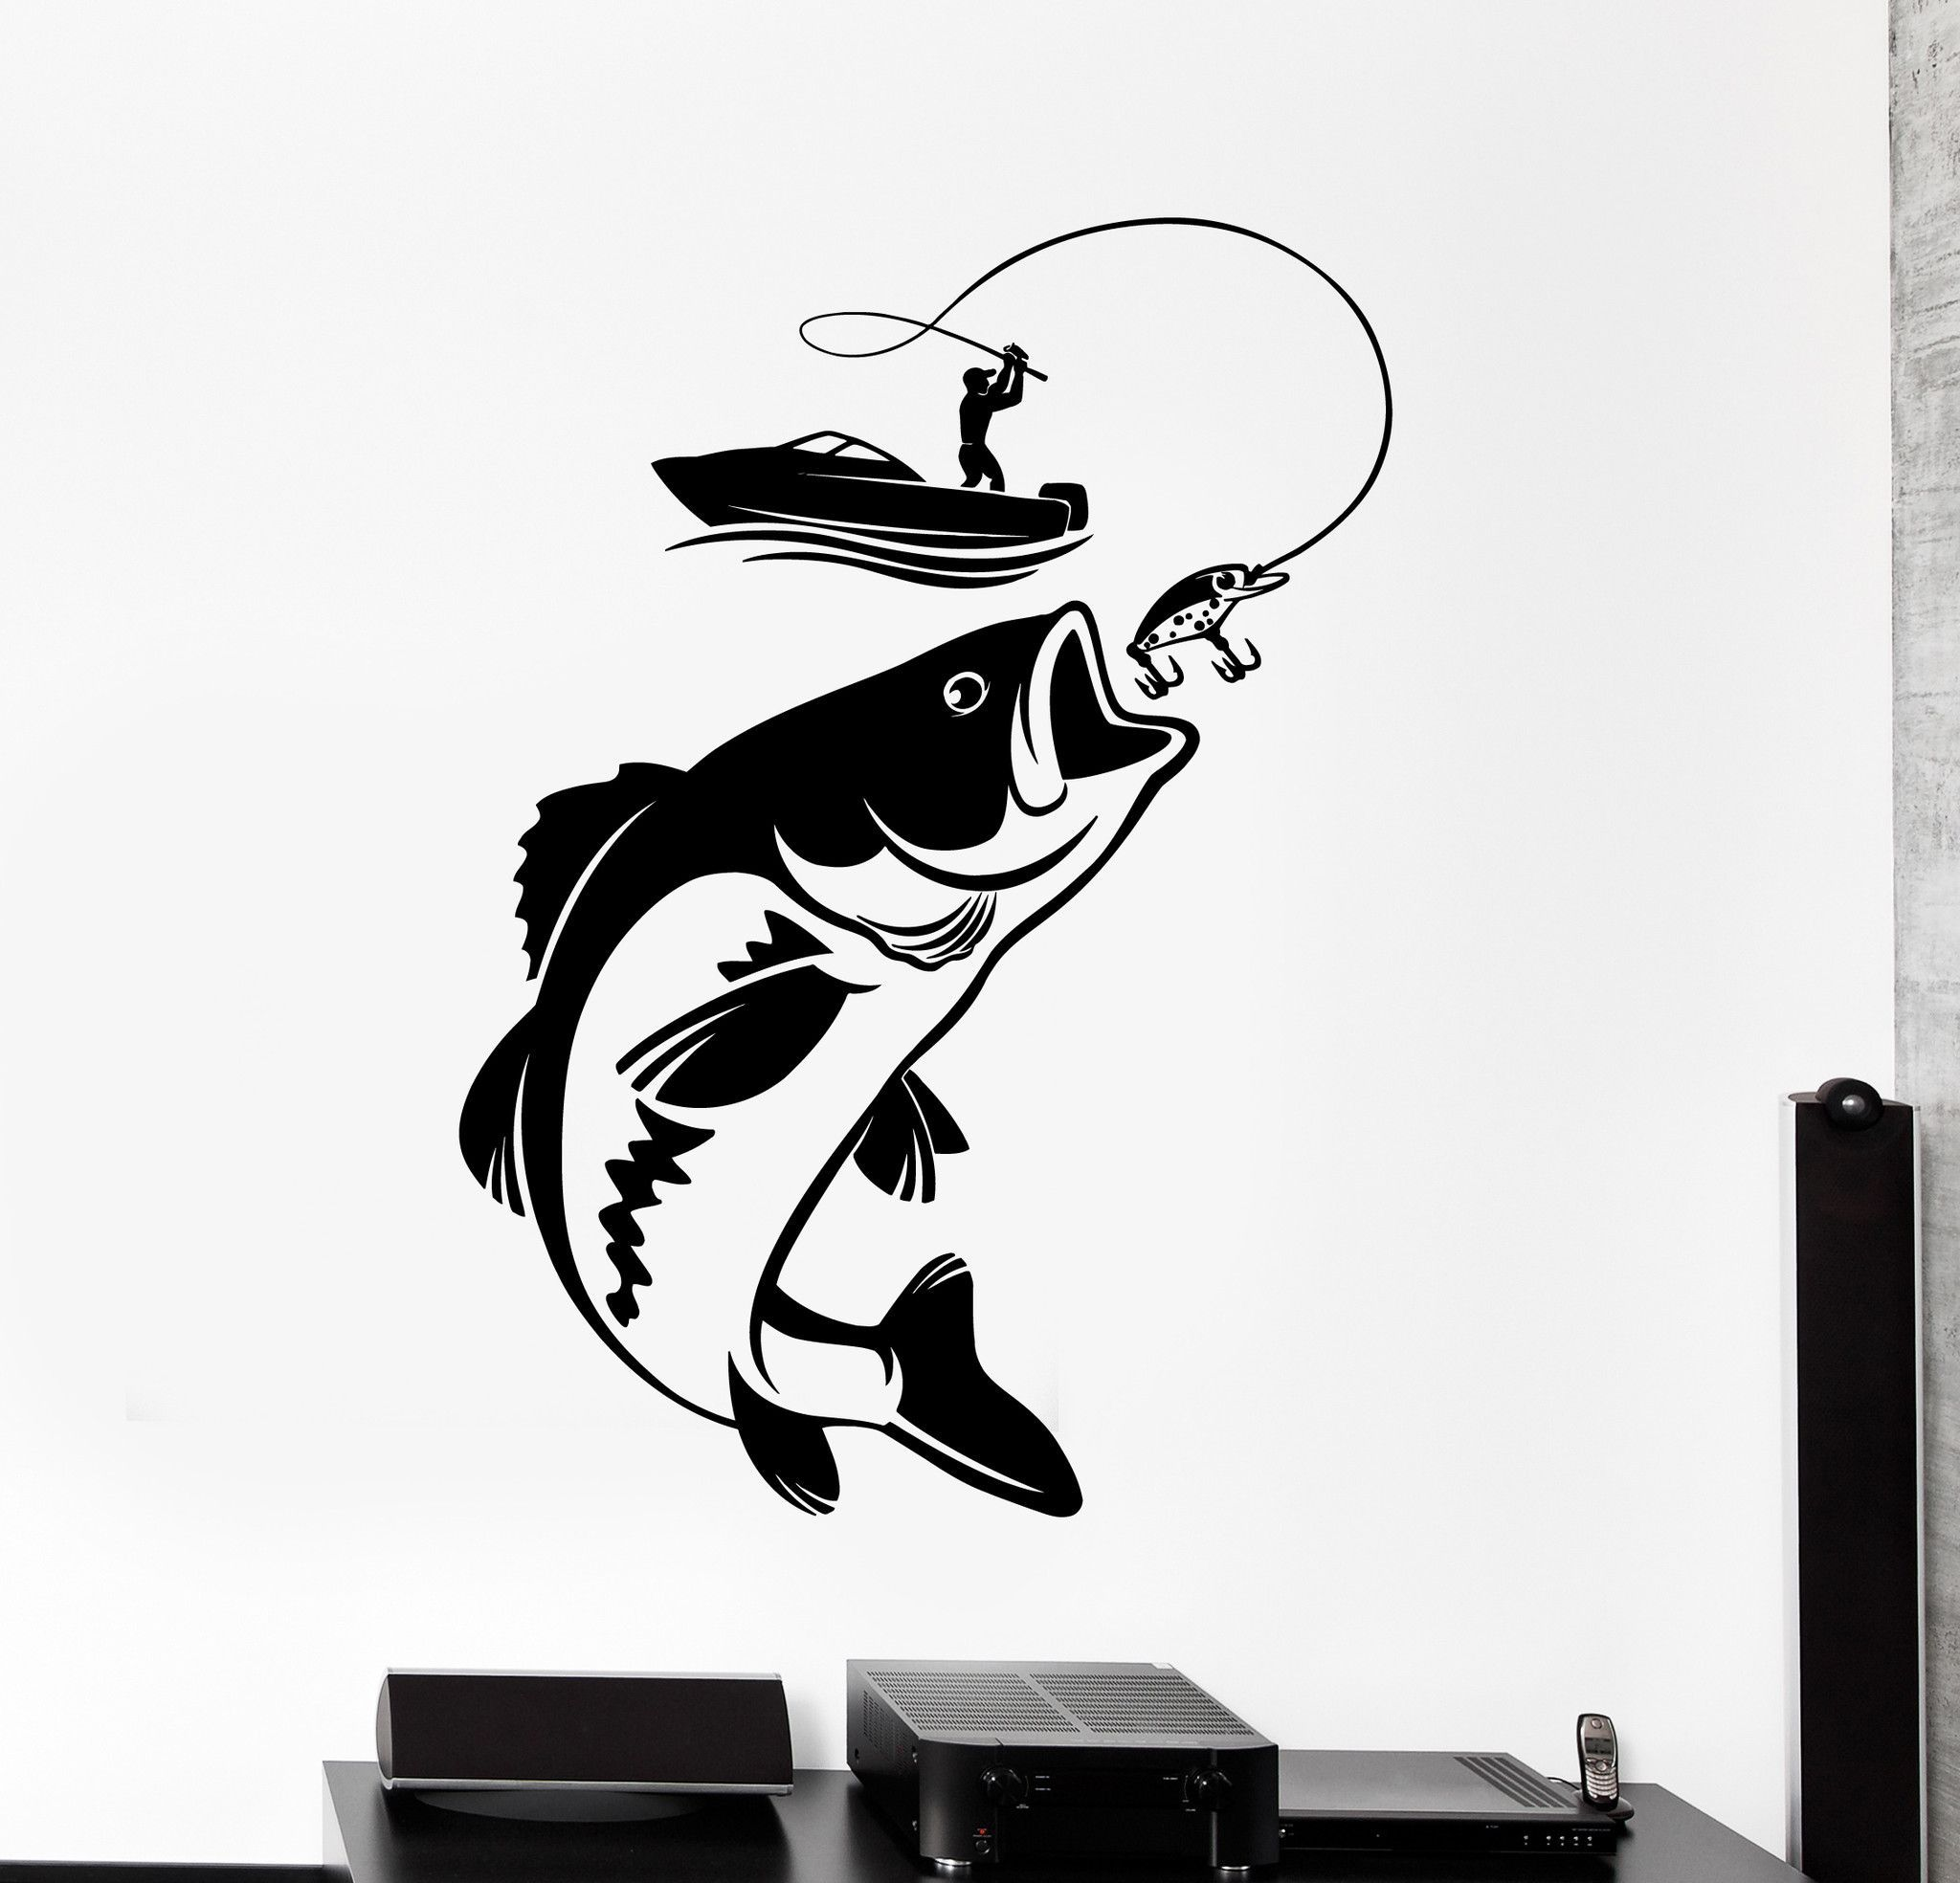 Vinyl Wall Decal Fishing Fisherman Hobby Fish Boat Stickers - Vinyl stickers for boats